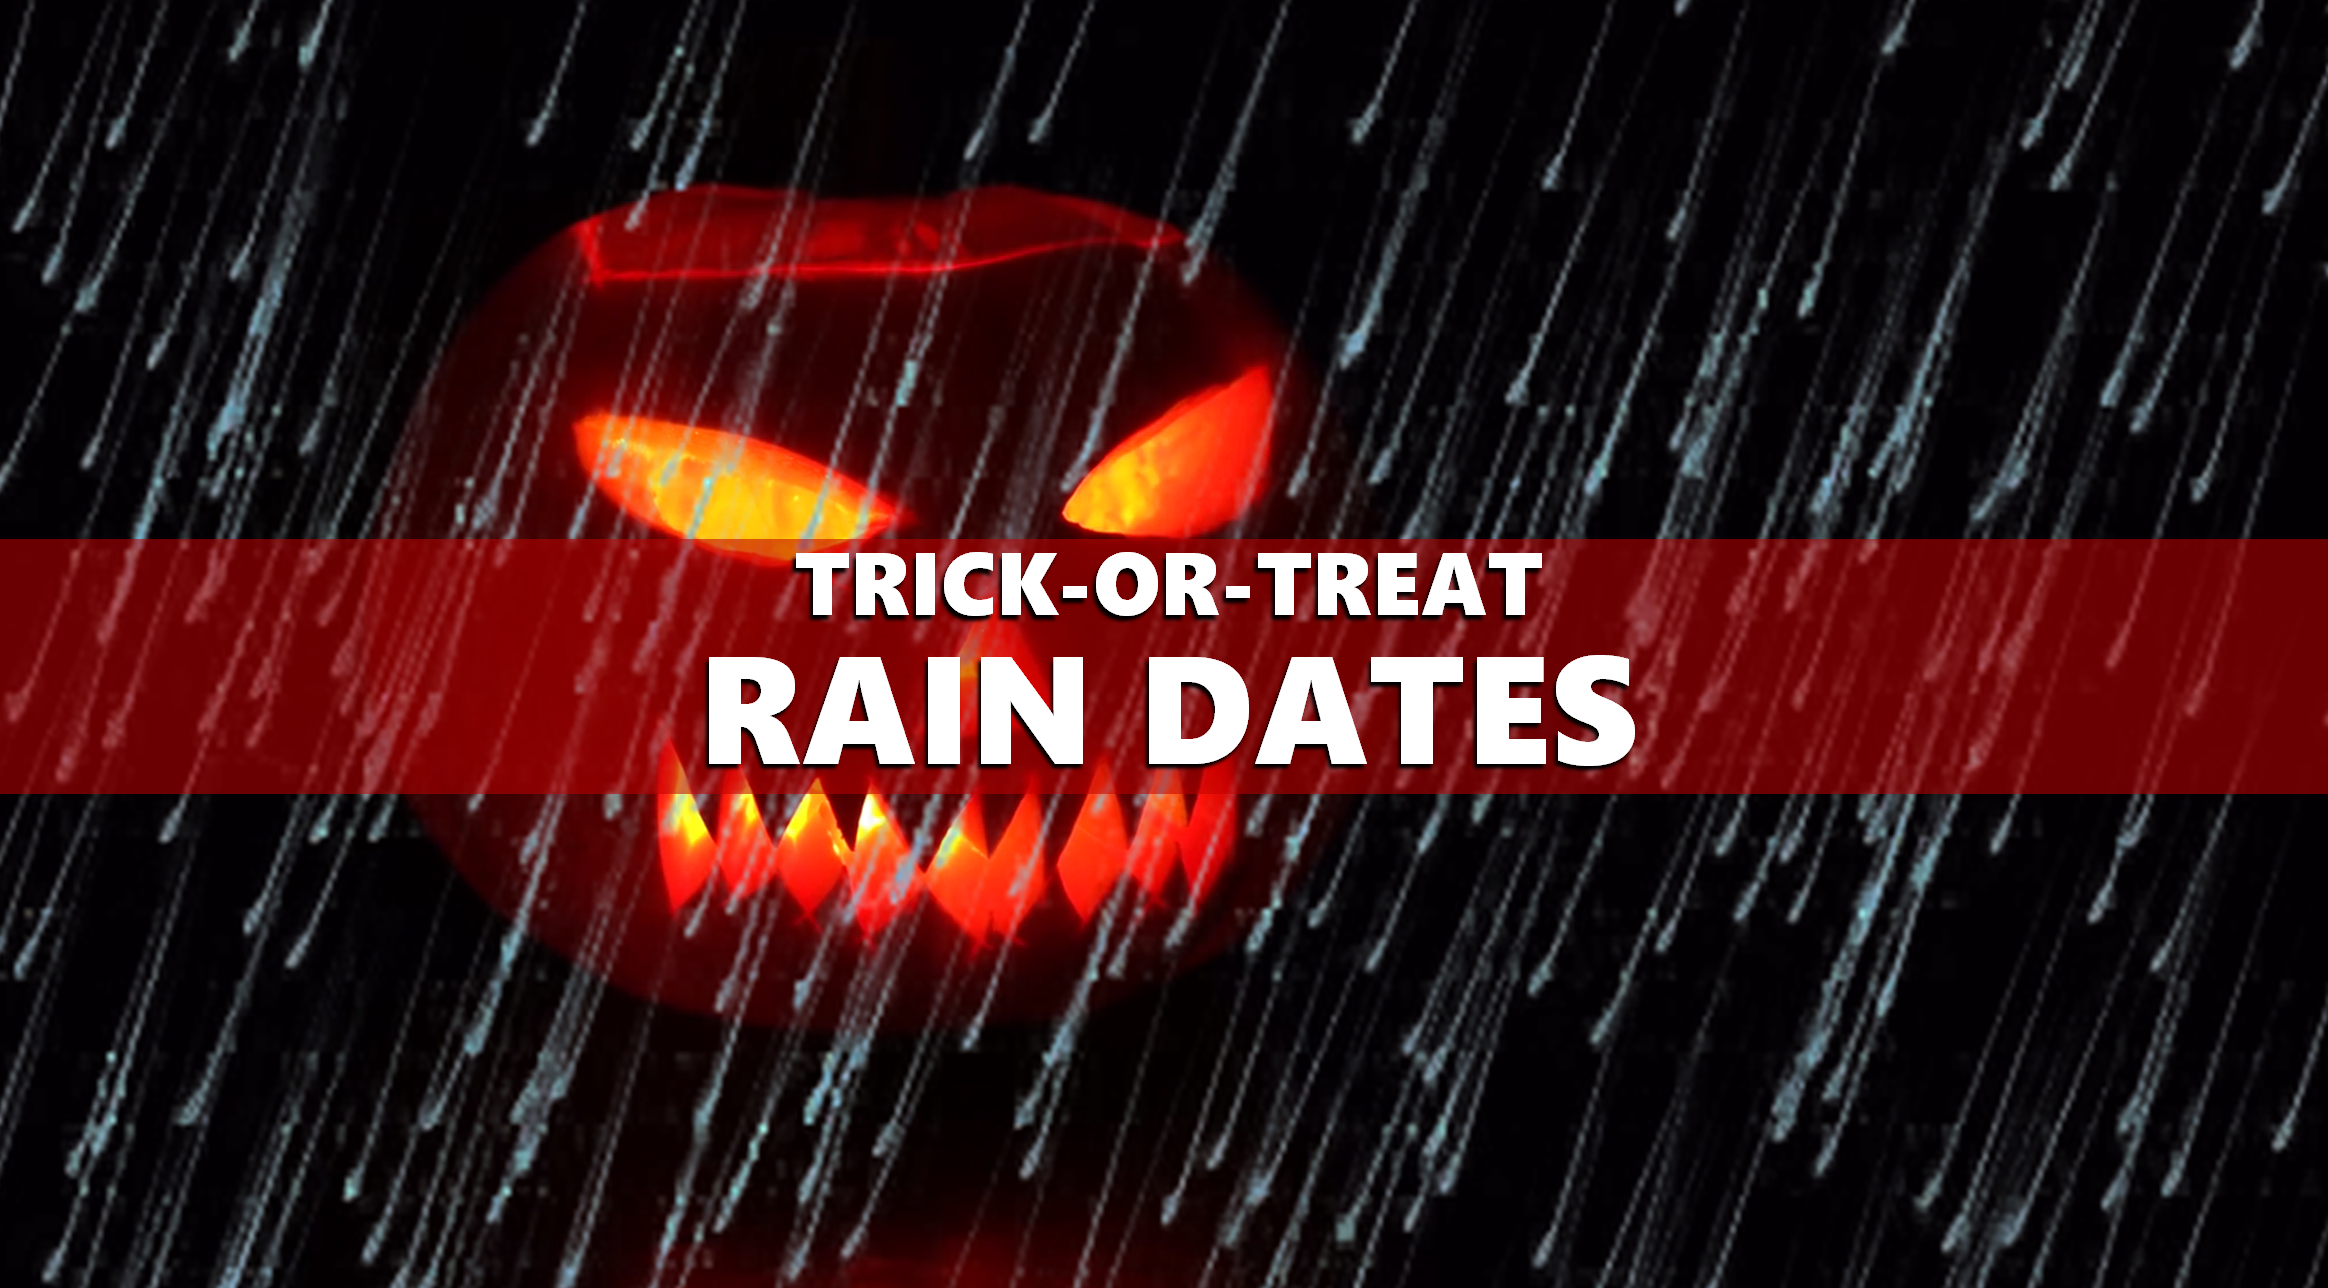 Trick-or-Treating Times Changing in Jasper, Other Locations Due to Rain Forecast